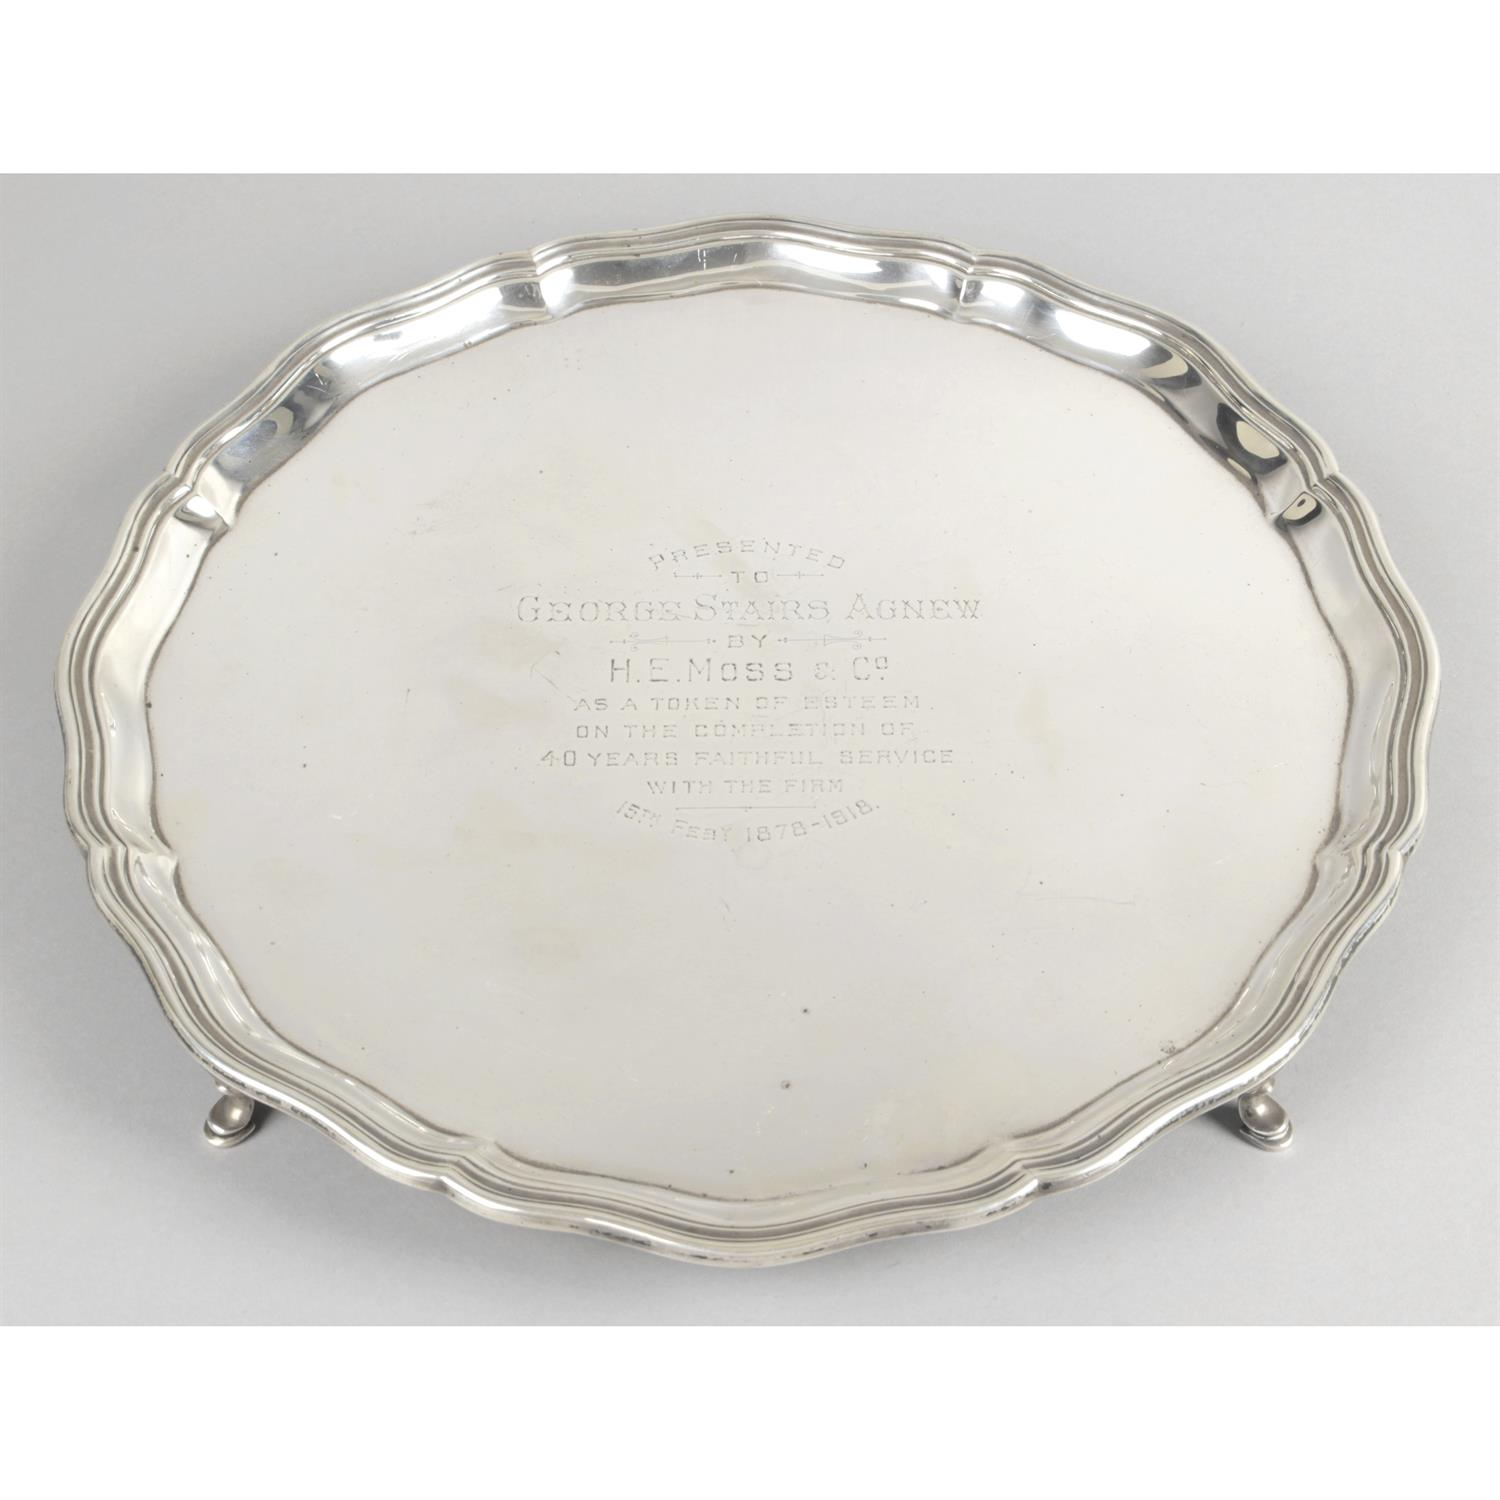 A large George V silver salver, with presentation engraving.